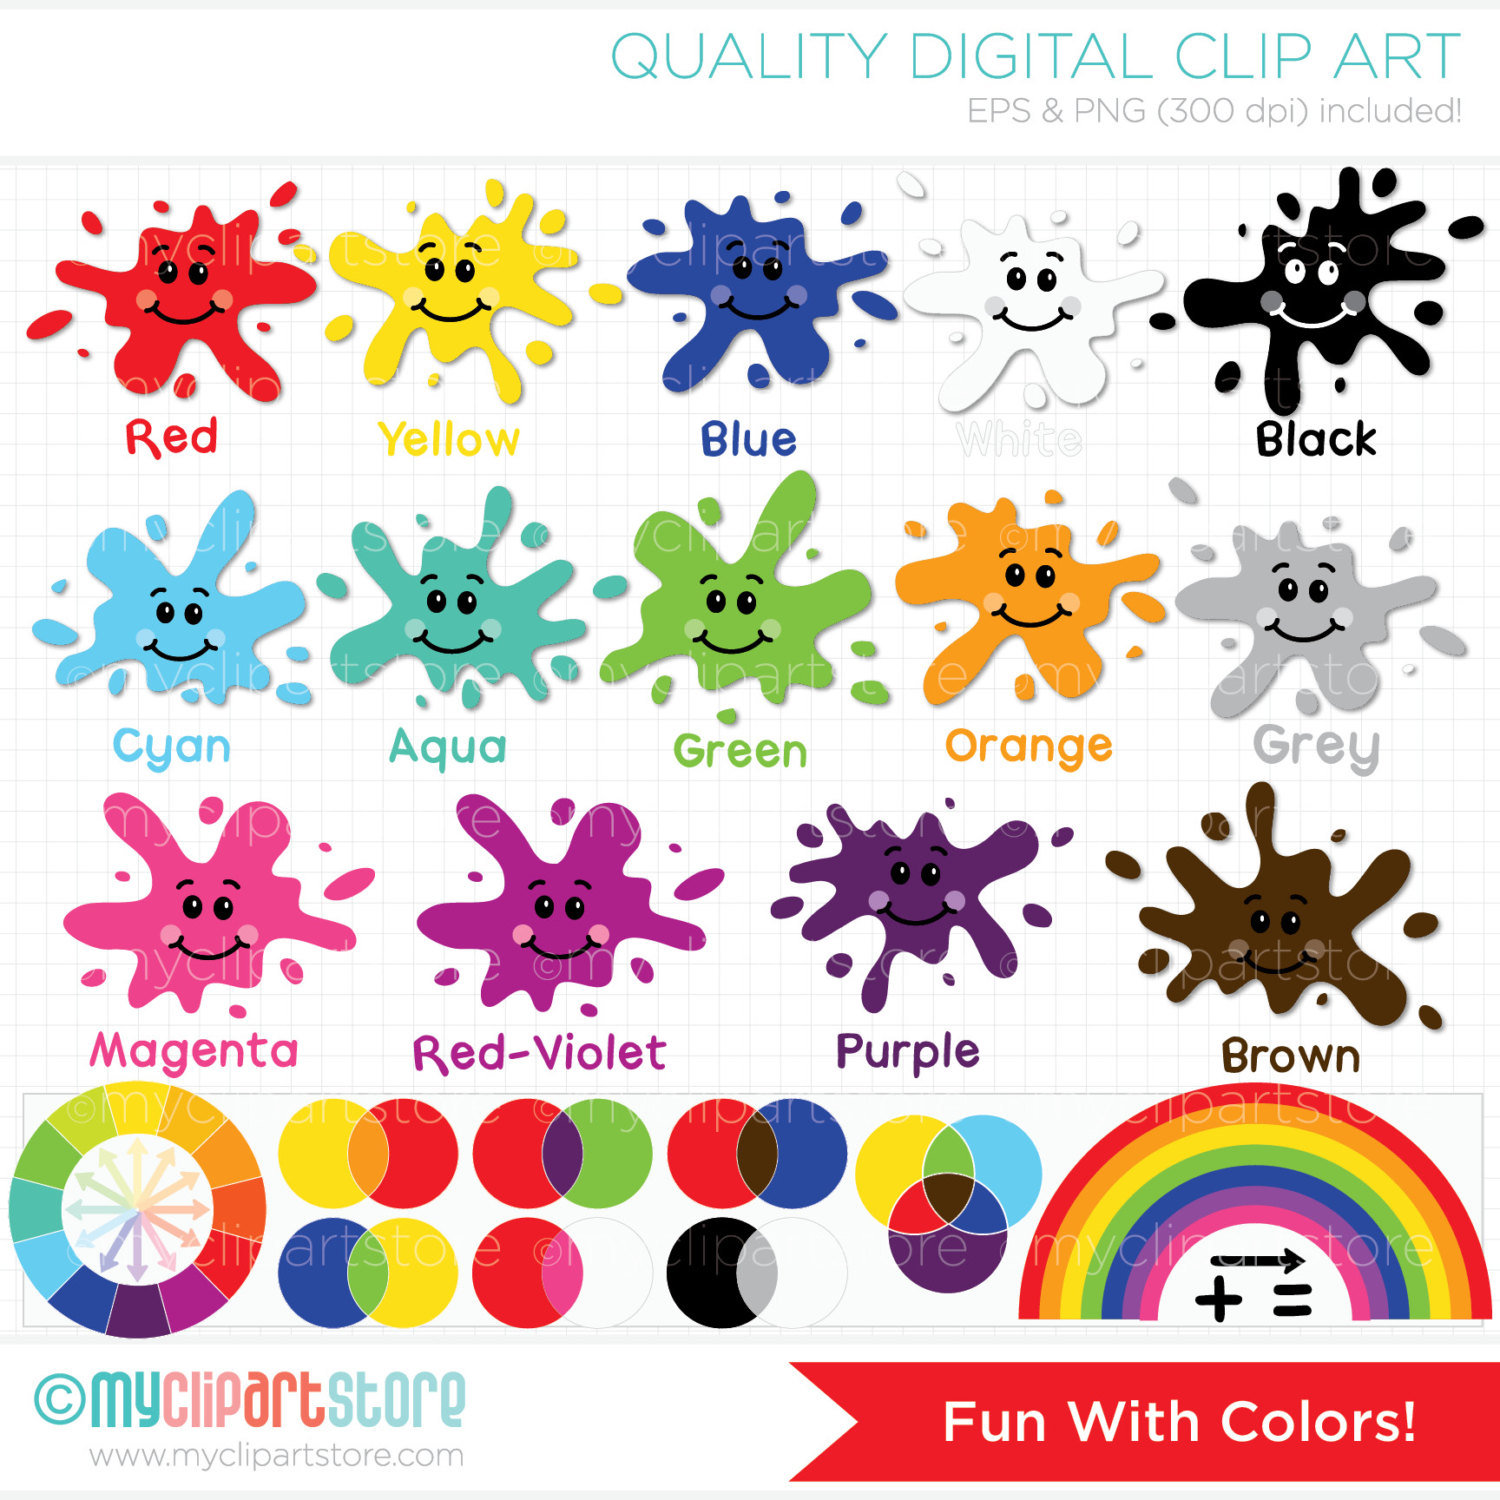 30 Colors Clipart paint for free download on Saurabh.